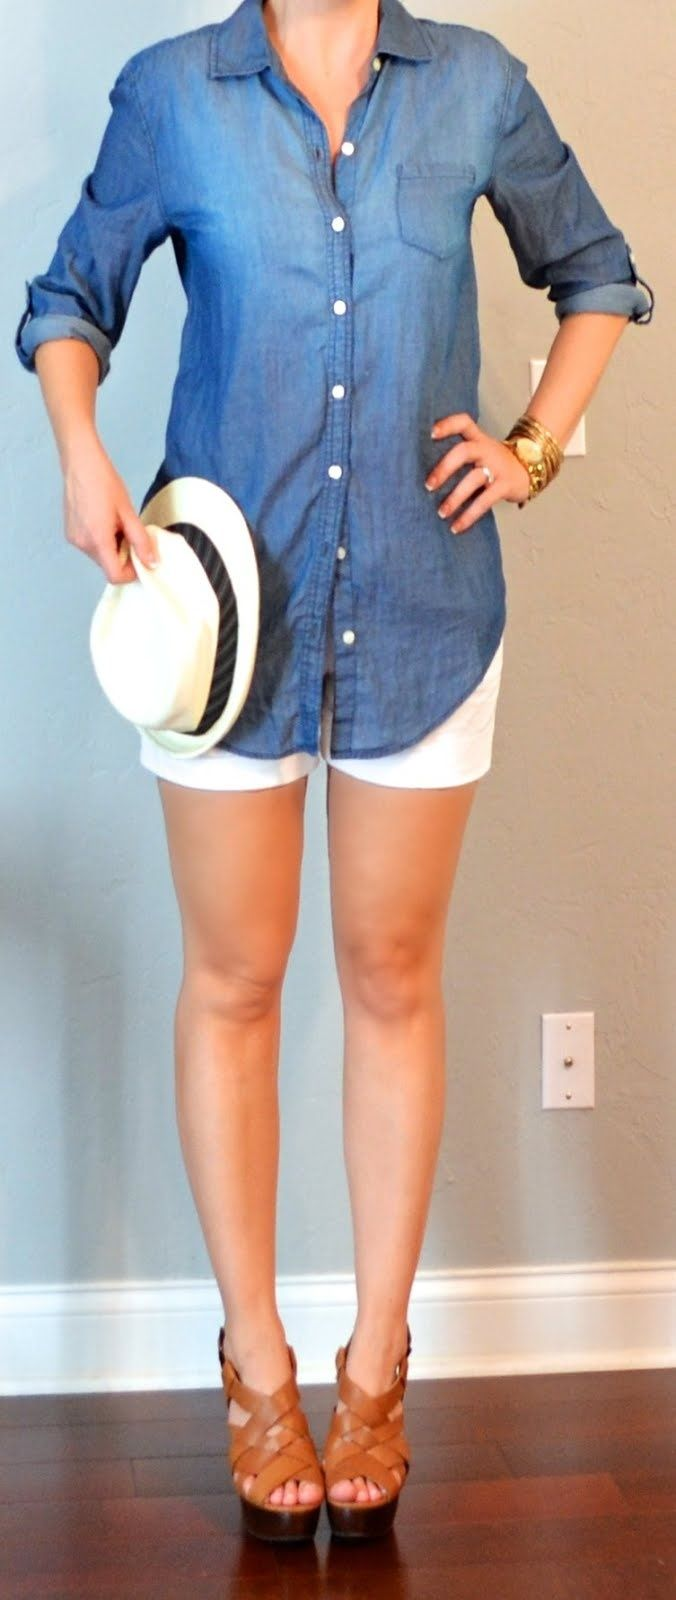 Outfits 21 25 One Suitcase Beach Vacation Capsule